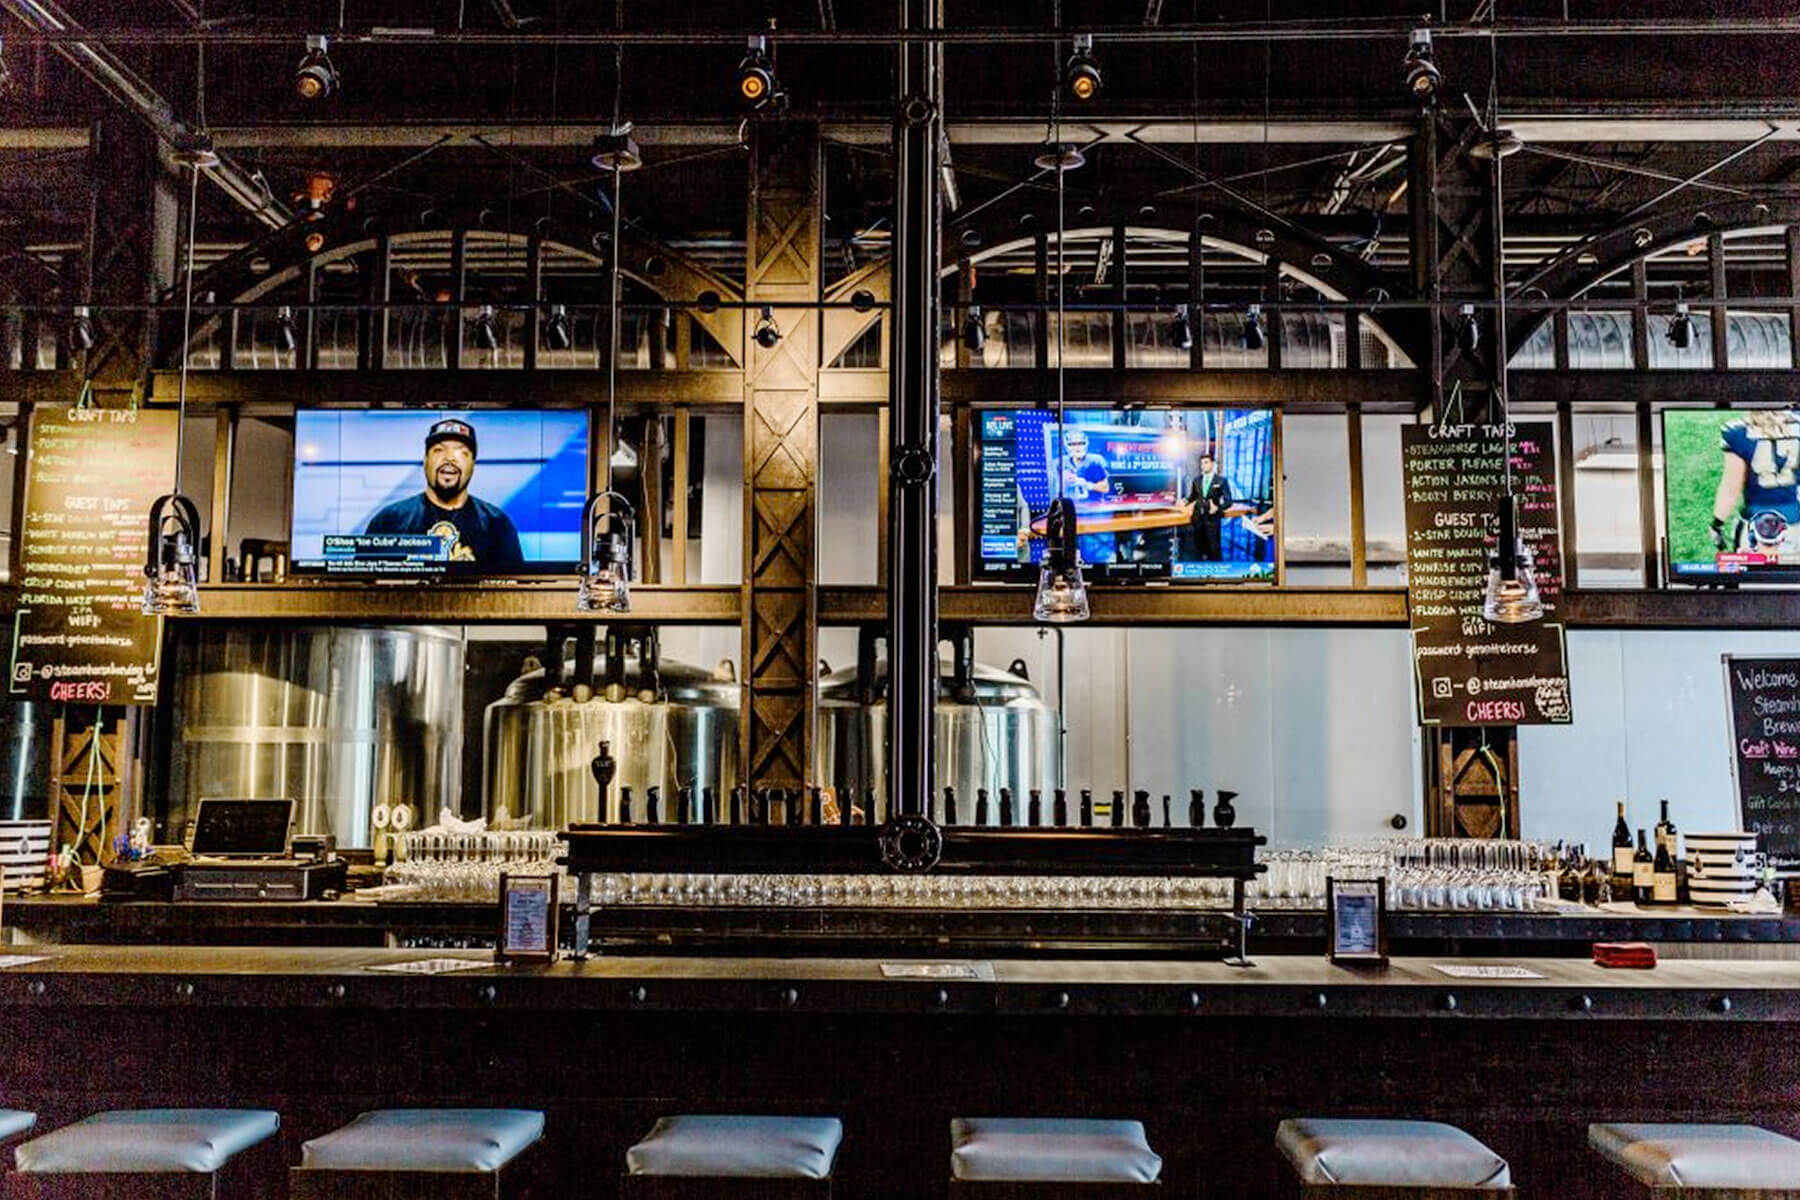 Inside the Steam Horse Brewing taproom in West Palm Beach, Florida